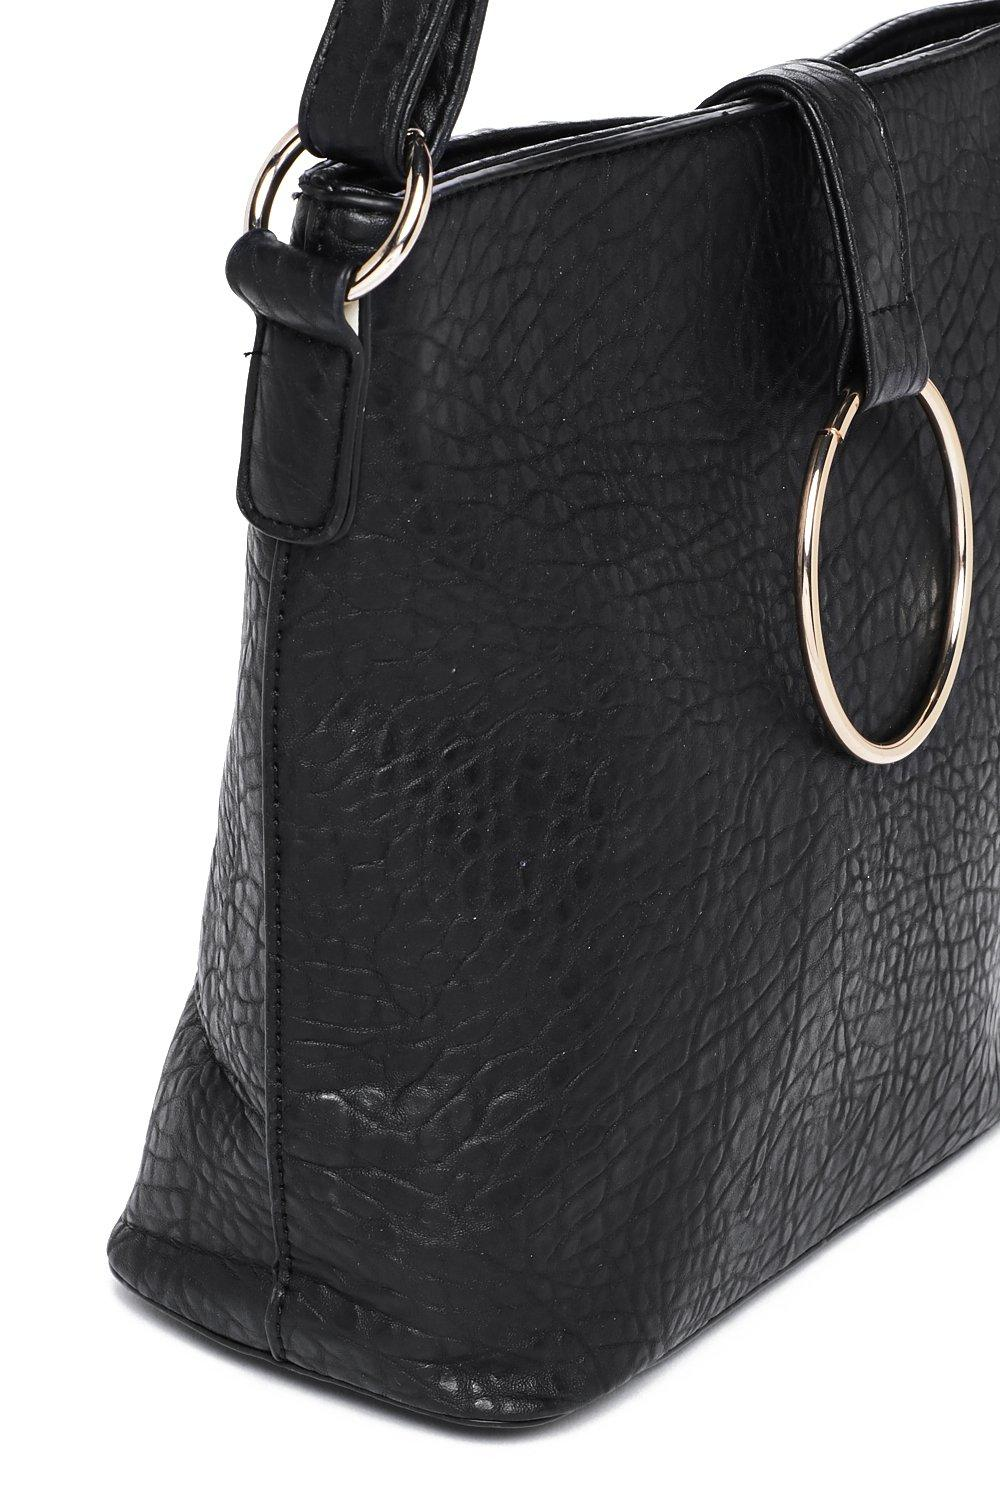 b5dabf360a WANT O-Rings a Bell Faux Leather Bag